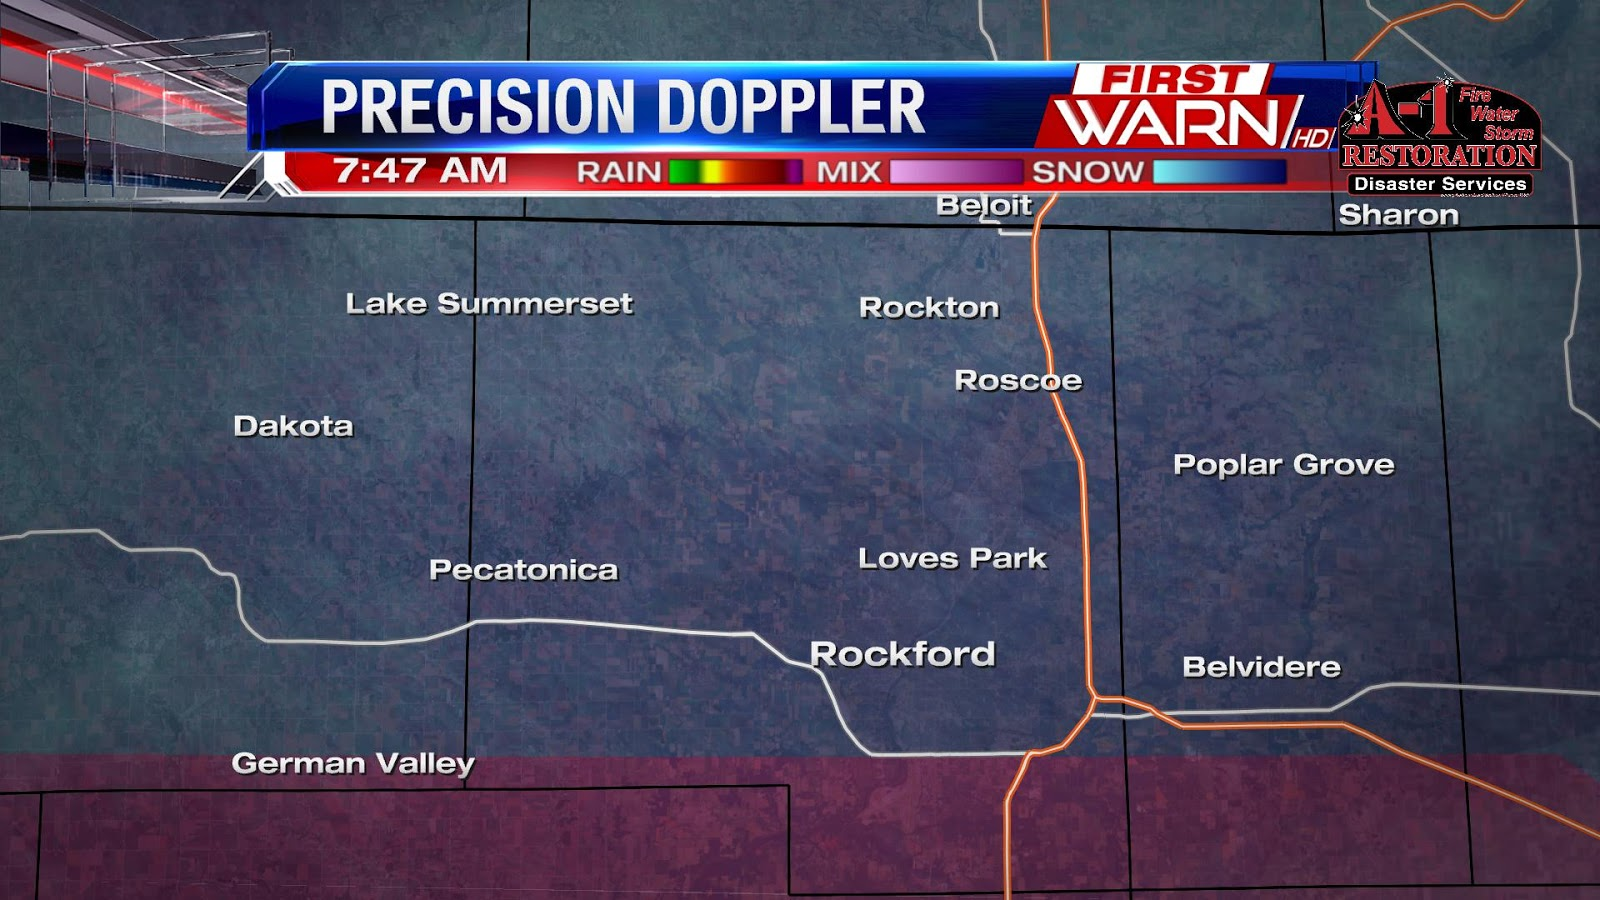 7 45 update band of moderate snow and sleet currently falling in the rockford area as well as near poplar grove and woodstock